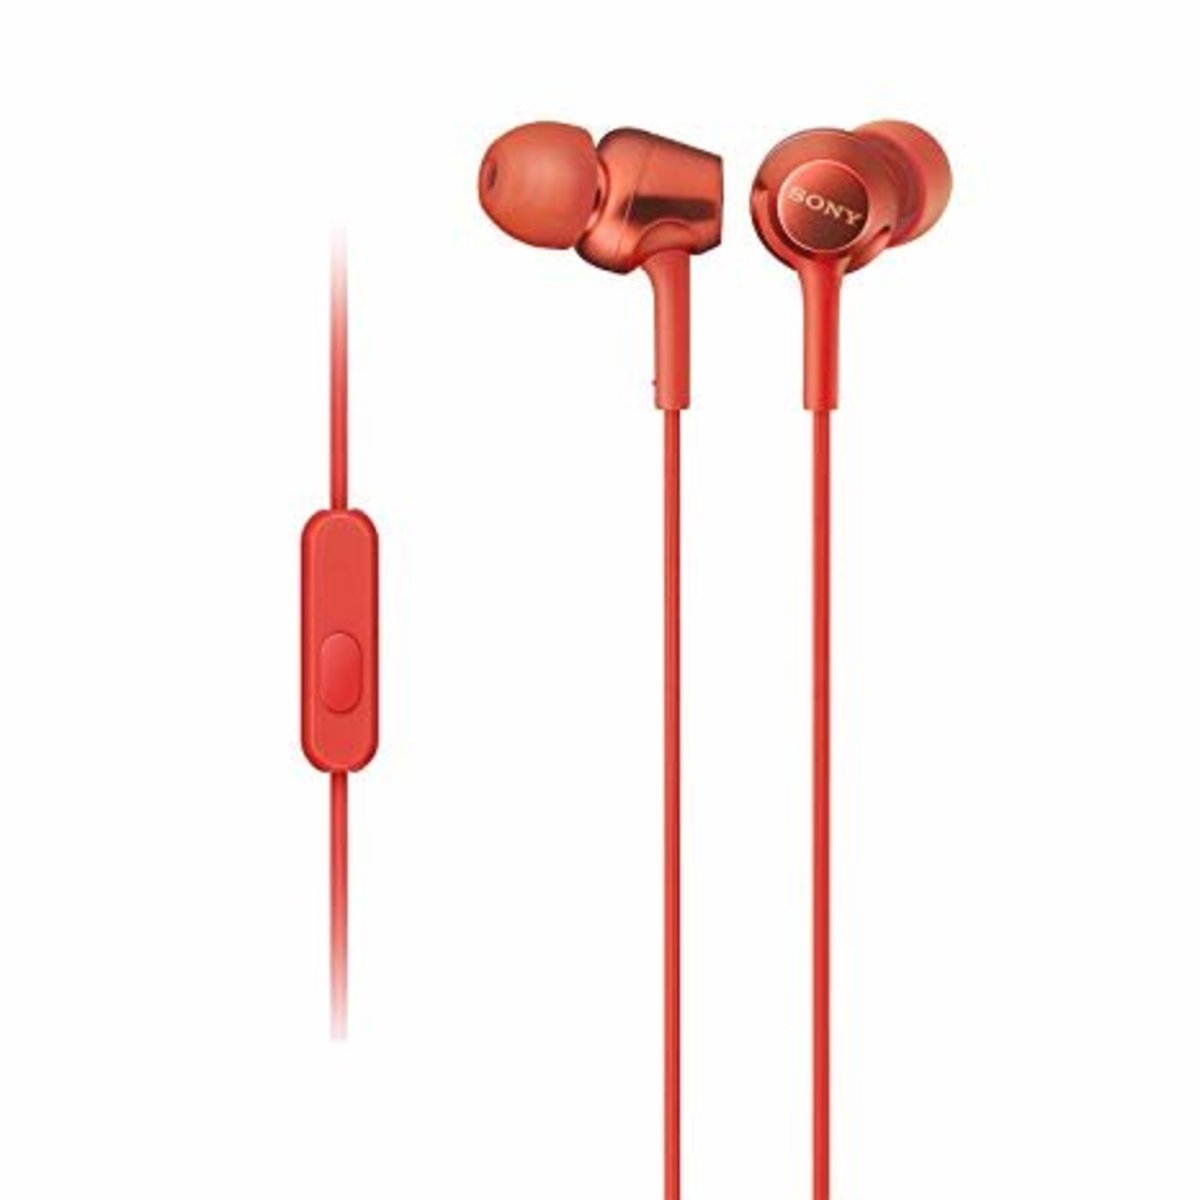 MDR EX255AP High Quality In-Ear Stereo Headphones / Red (Parallel imported)